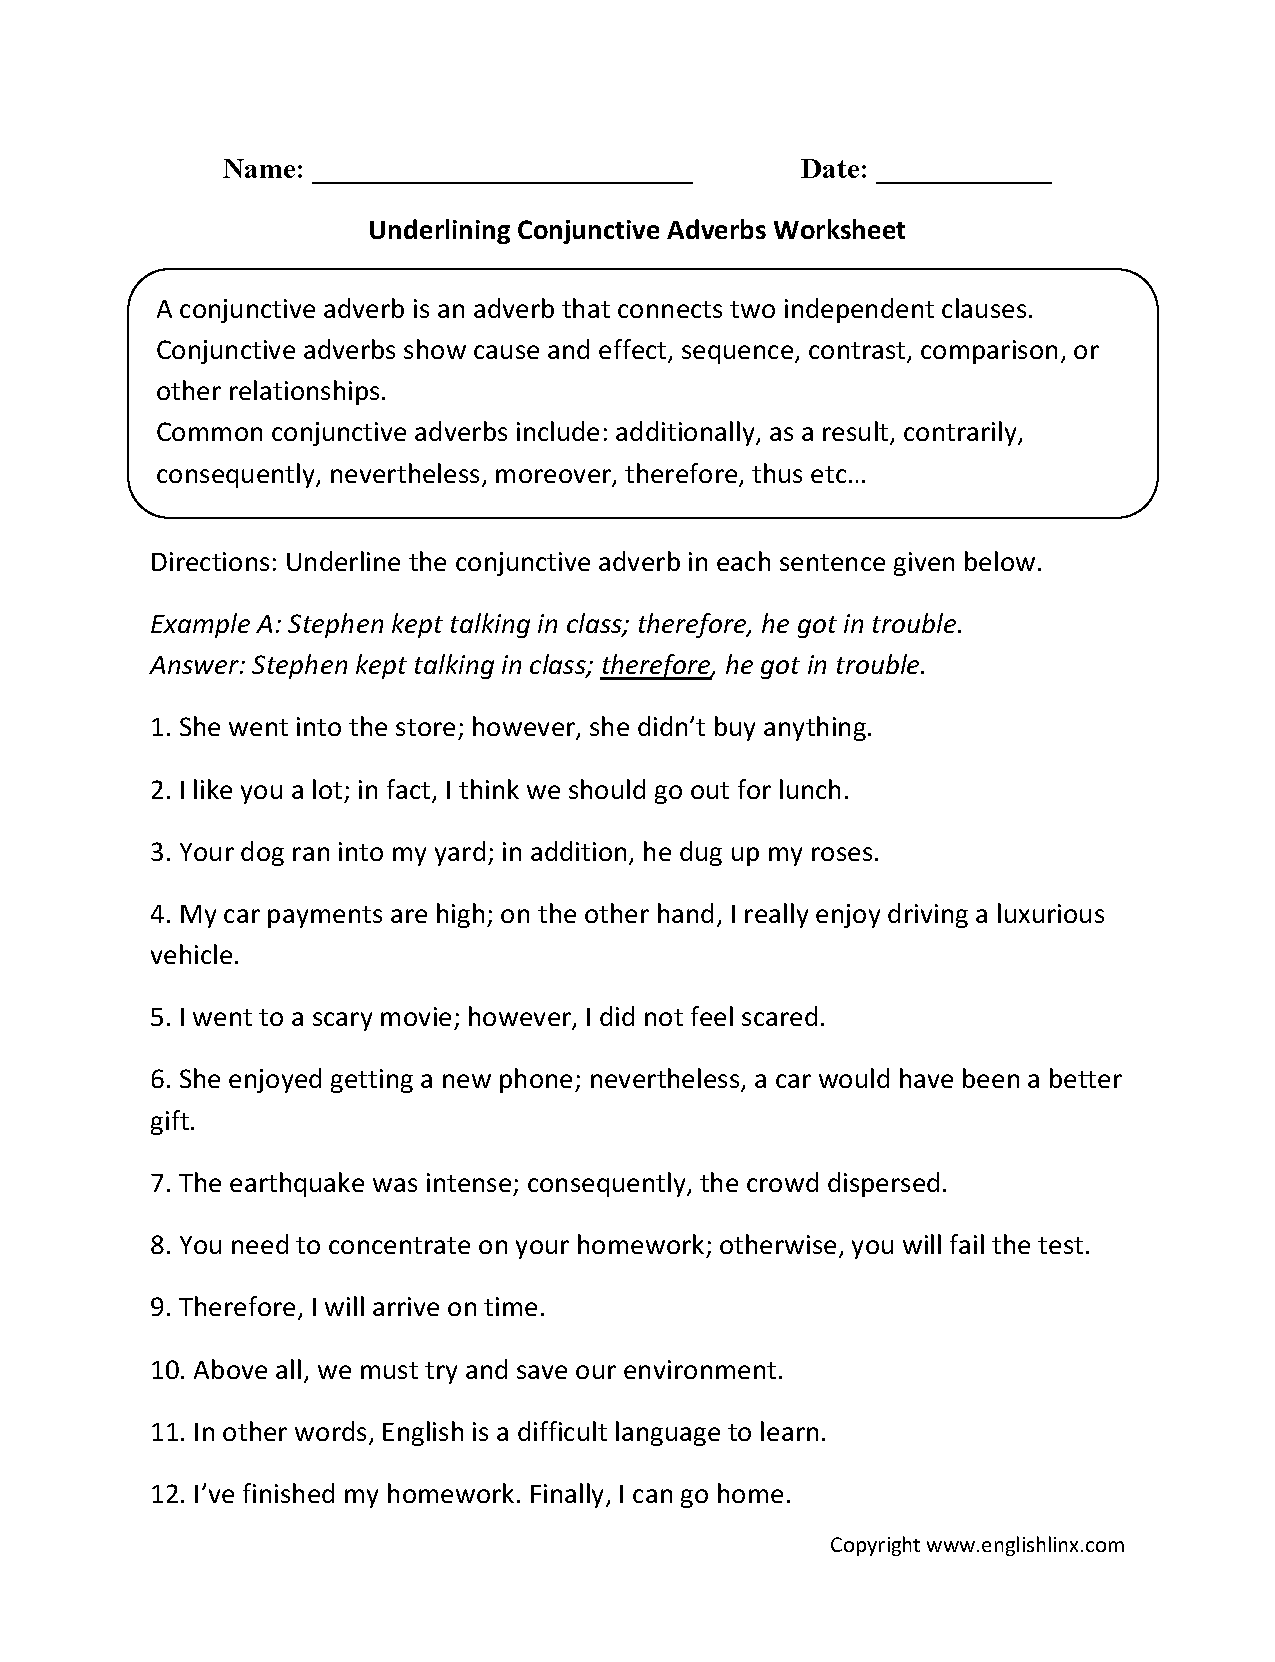 Aldiablosus  Seductive Englishlinxcom  Conjunctions Worksheets With Likable Worksheet With Beautiful Writing Sentences Worksheet Also Periodic Table Worksheets Pdf In Addition Free Worksheets On Fractions And Kindergarten Worksheet Printables As Well As The Great Plant Escape Worksheet Answers Additionally Solving Equations In One Variable Worksheet From Englishlinxcom With Aldiablosus  Likable Englishlinxcom  Conjunctions Worksheets With Beautiful Worksheet And Seductive Writing Sentences Worksheet Also Periodic Table Worksheets Pdf In Addition Free Worksheets On Fractions From Englishlinxcom